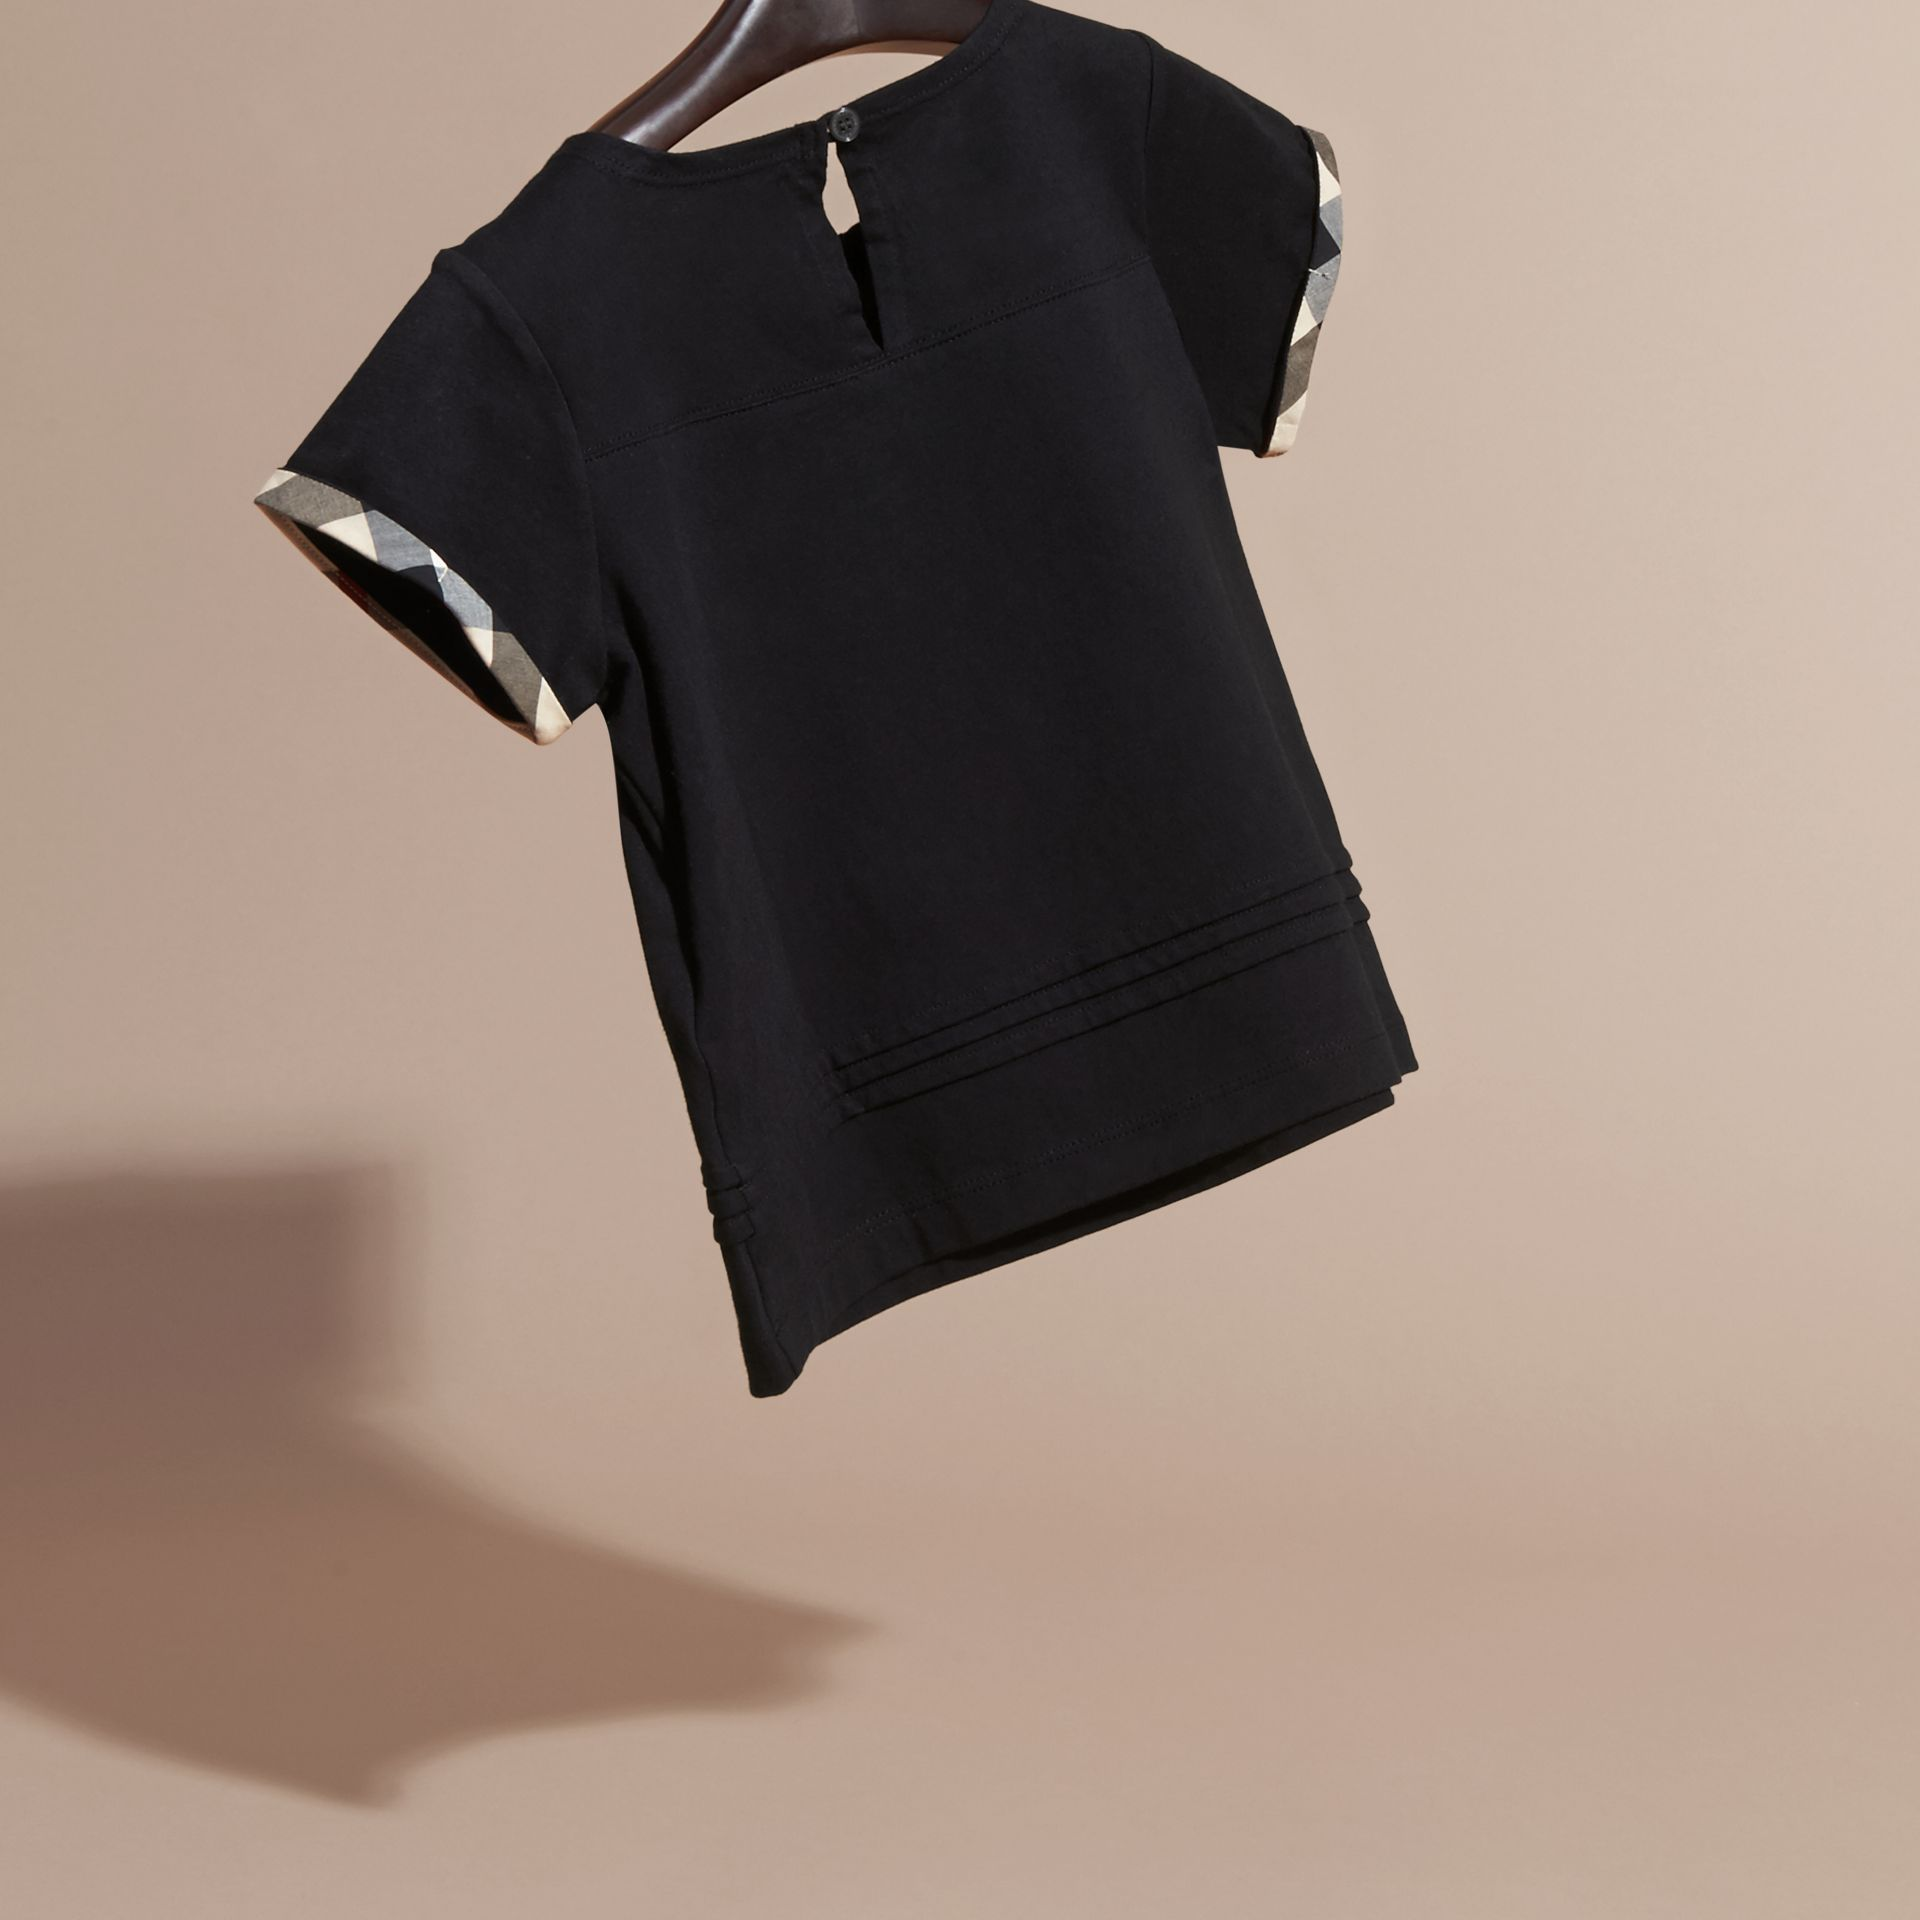 Black Pleat Detail Check Cotton T-Shirt Black - gallery image 4